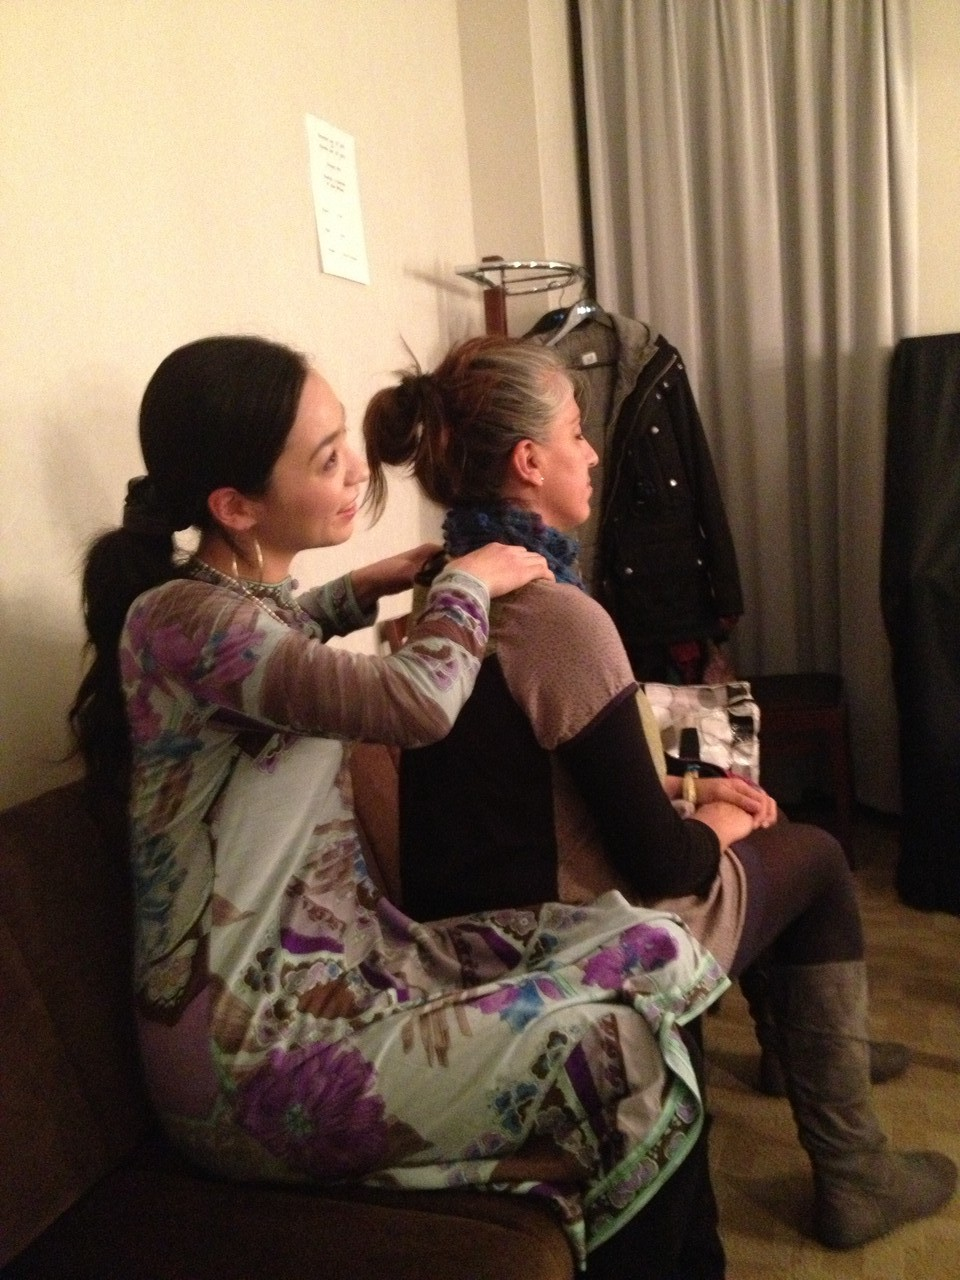 Chris's wife gives Adriana a massage - this is well-overdue as she is always caring for others! — with Adriana Sanchez Zoletto.